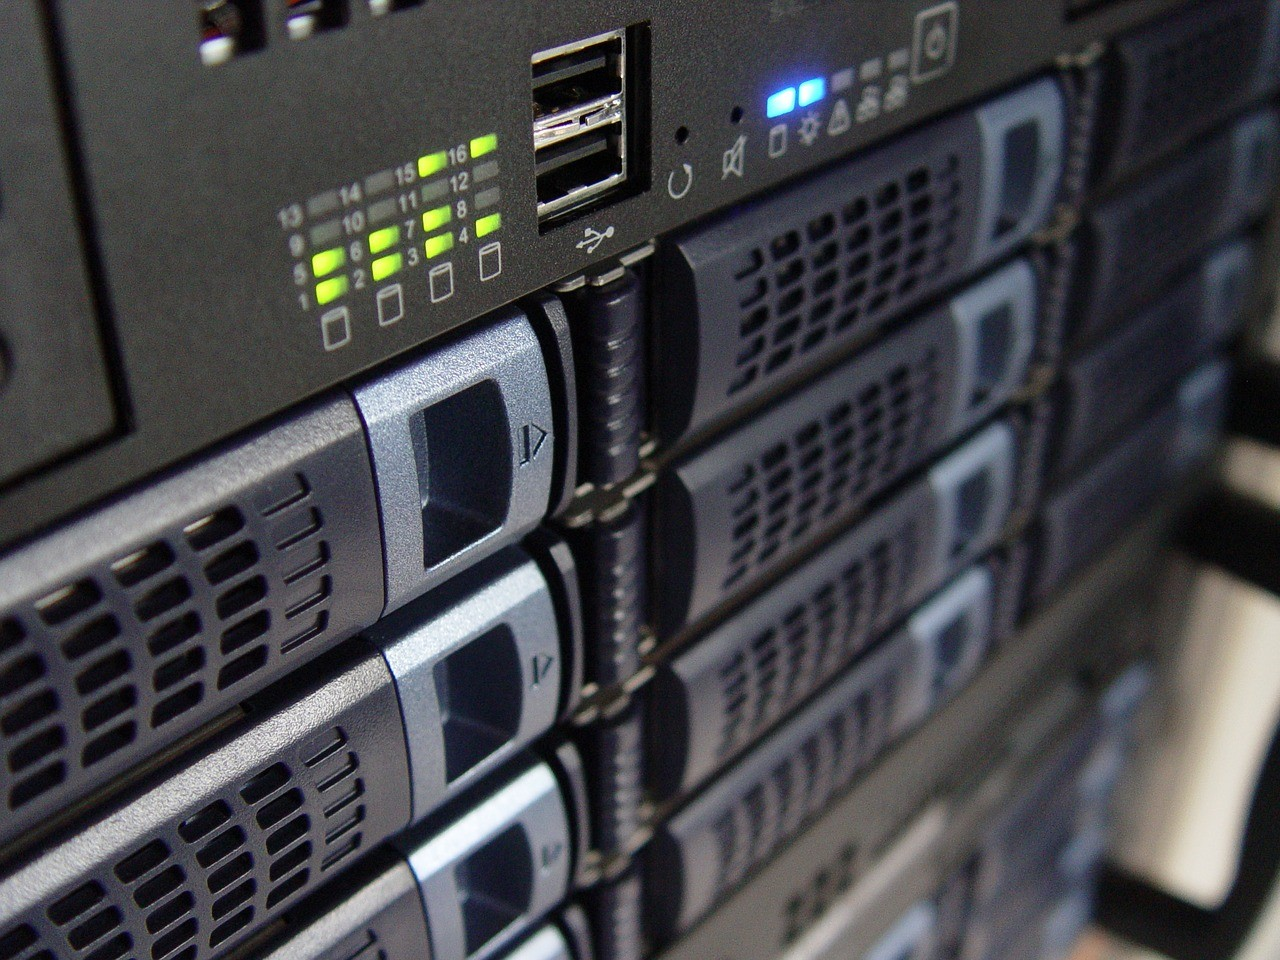 Hosting hardware issues could take your site down